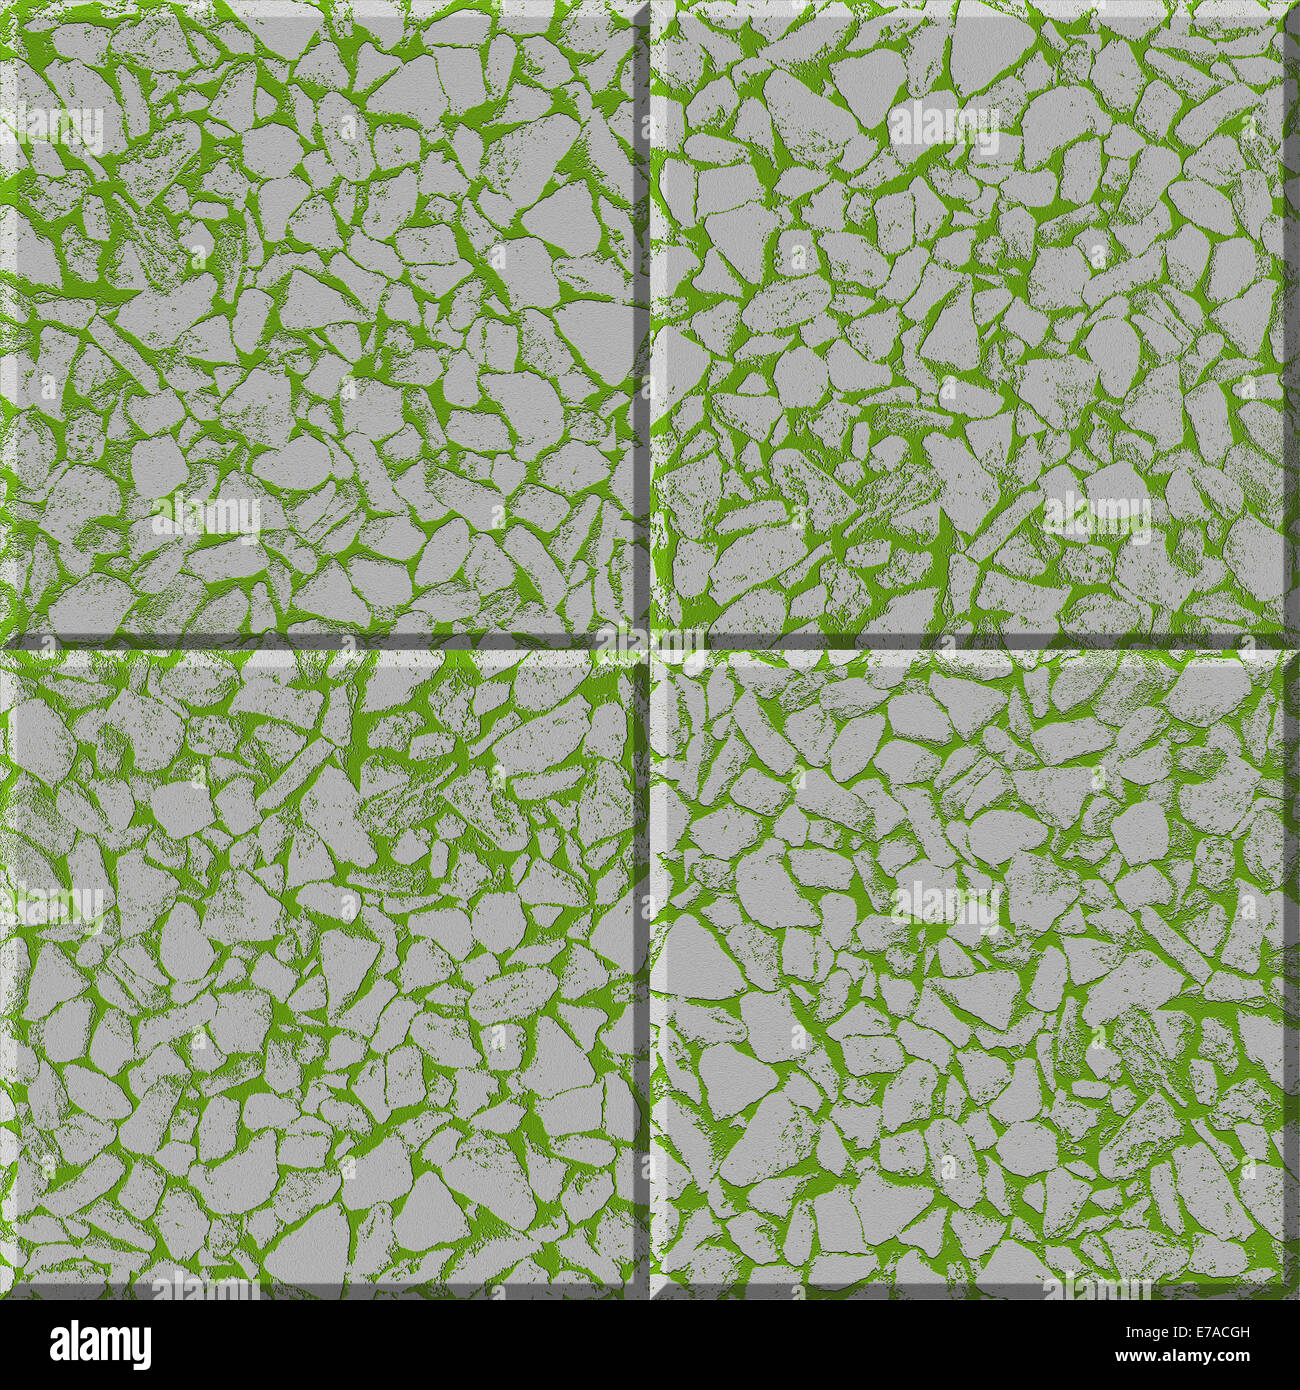 Texture of a ceramic tile of a green shade with stone or rubble texture of a ceramic tile of a green shade with stone or rubble drawing doublecrazyfo Choice Image